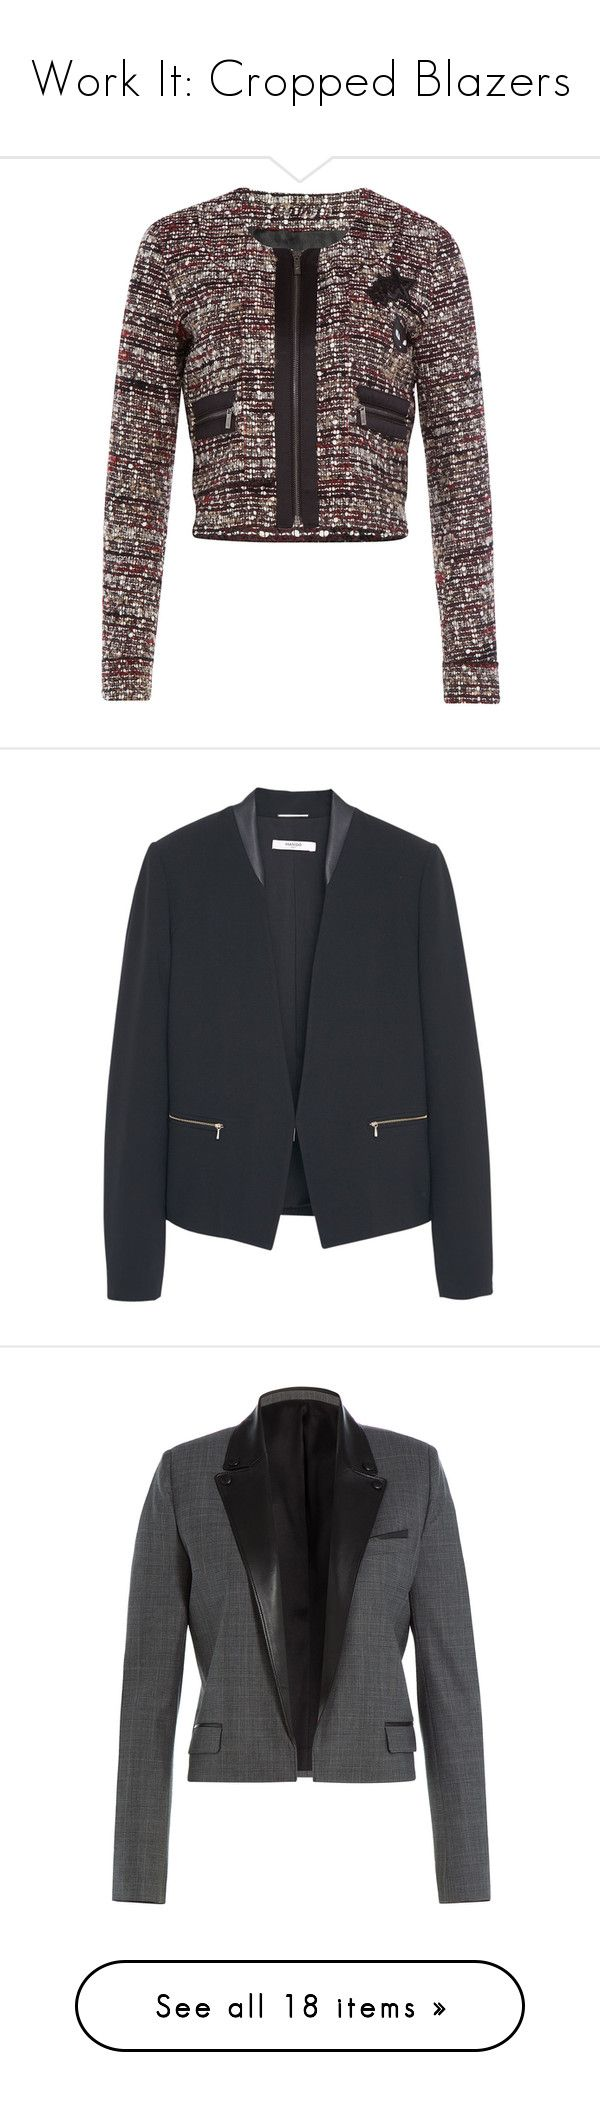 """""""Work It: Cropped Blazers"""" by polyvore-editorial ❤ liked on Polyvore featuring croppedblazers, outerwear, jackets, blazers, coats, multicolor, colorful blazers, tweed jacket, sequin jacket and slim fit blazer"""